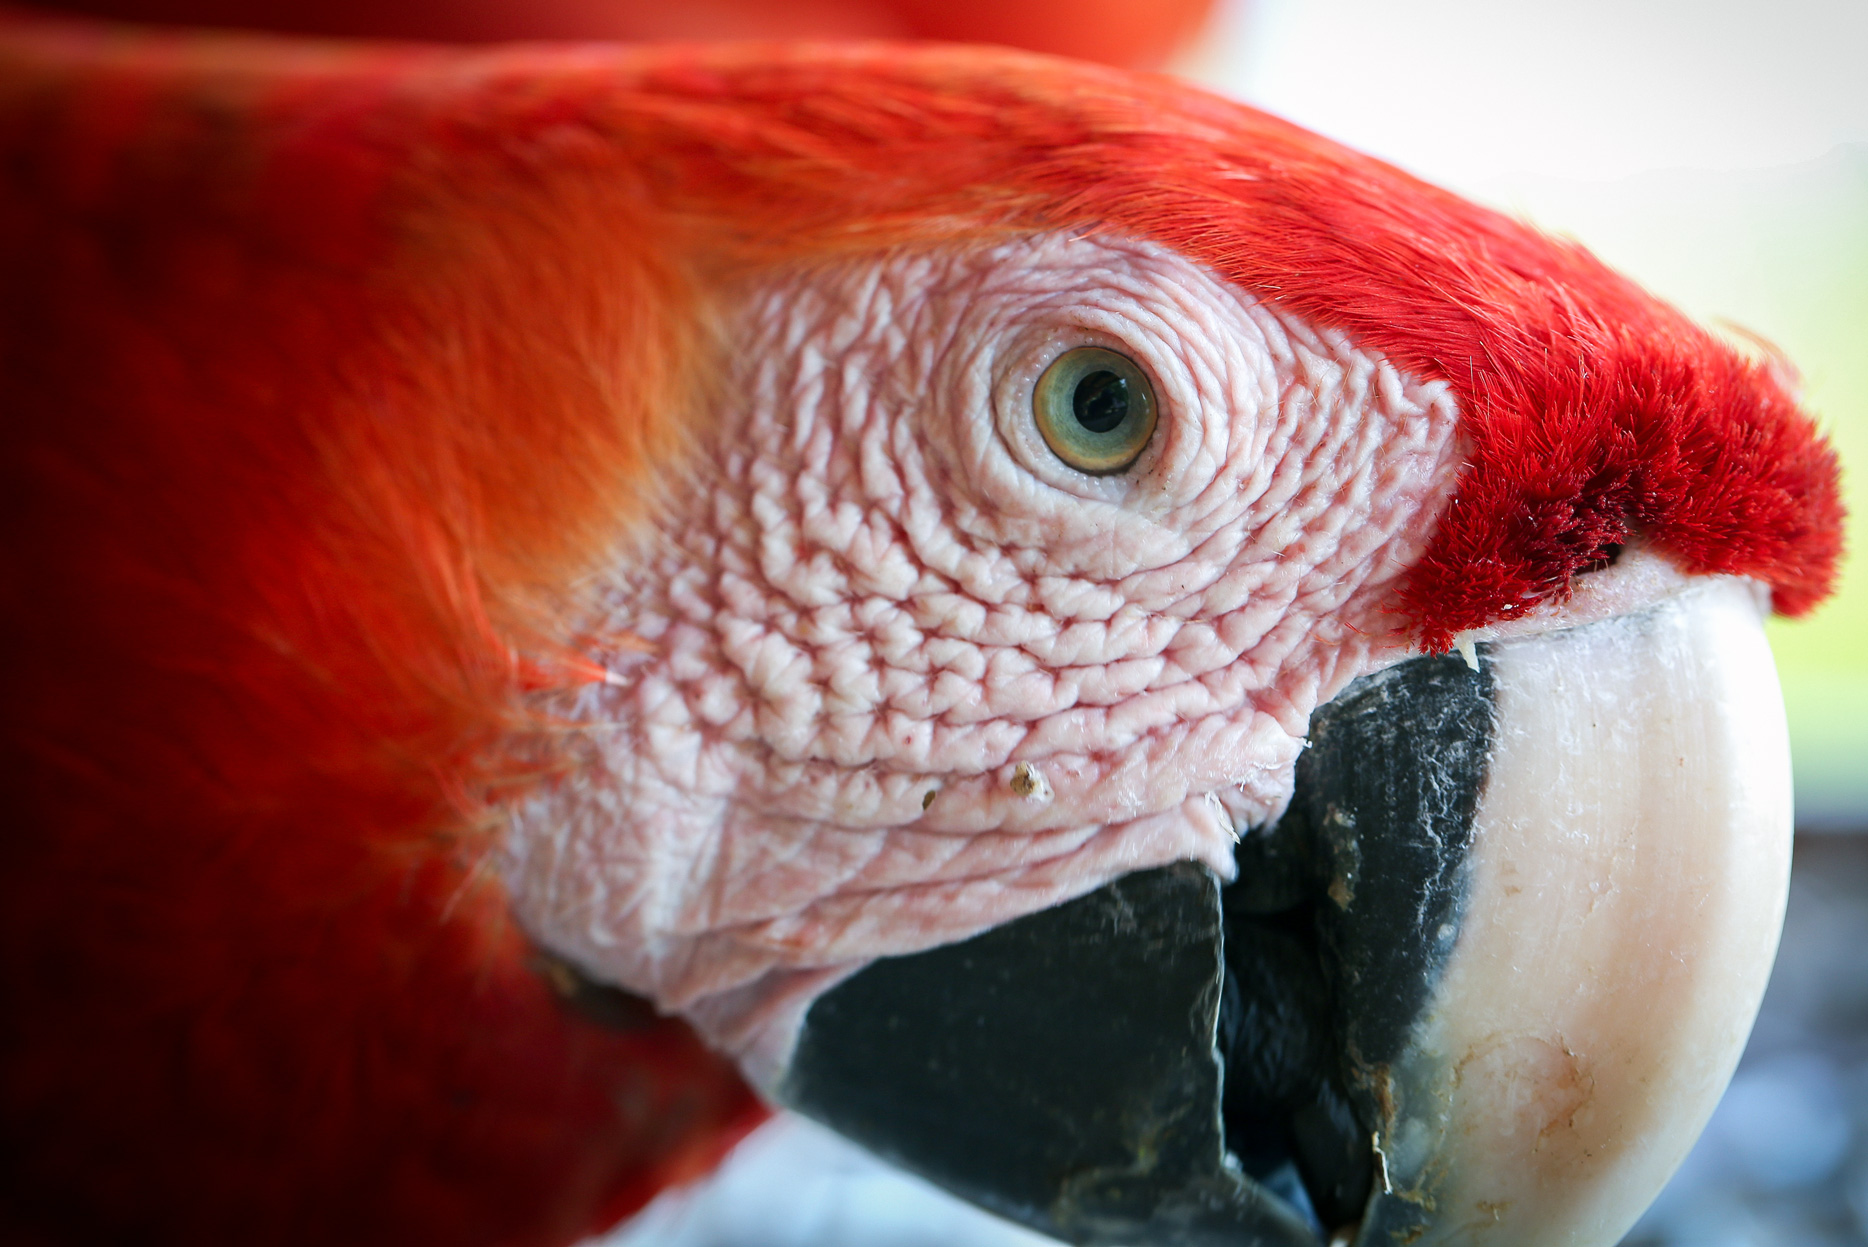 Scarlet Macaw- Stare Into My Eye . Taken in Carate, Costa Rica. Photo by Ben Blankenship. March 2018.